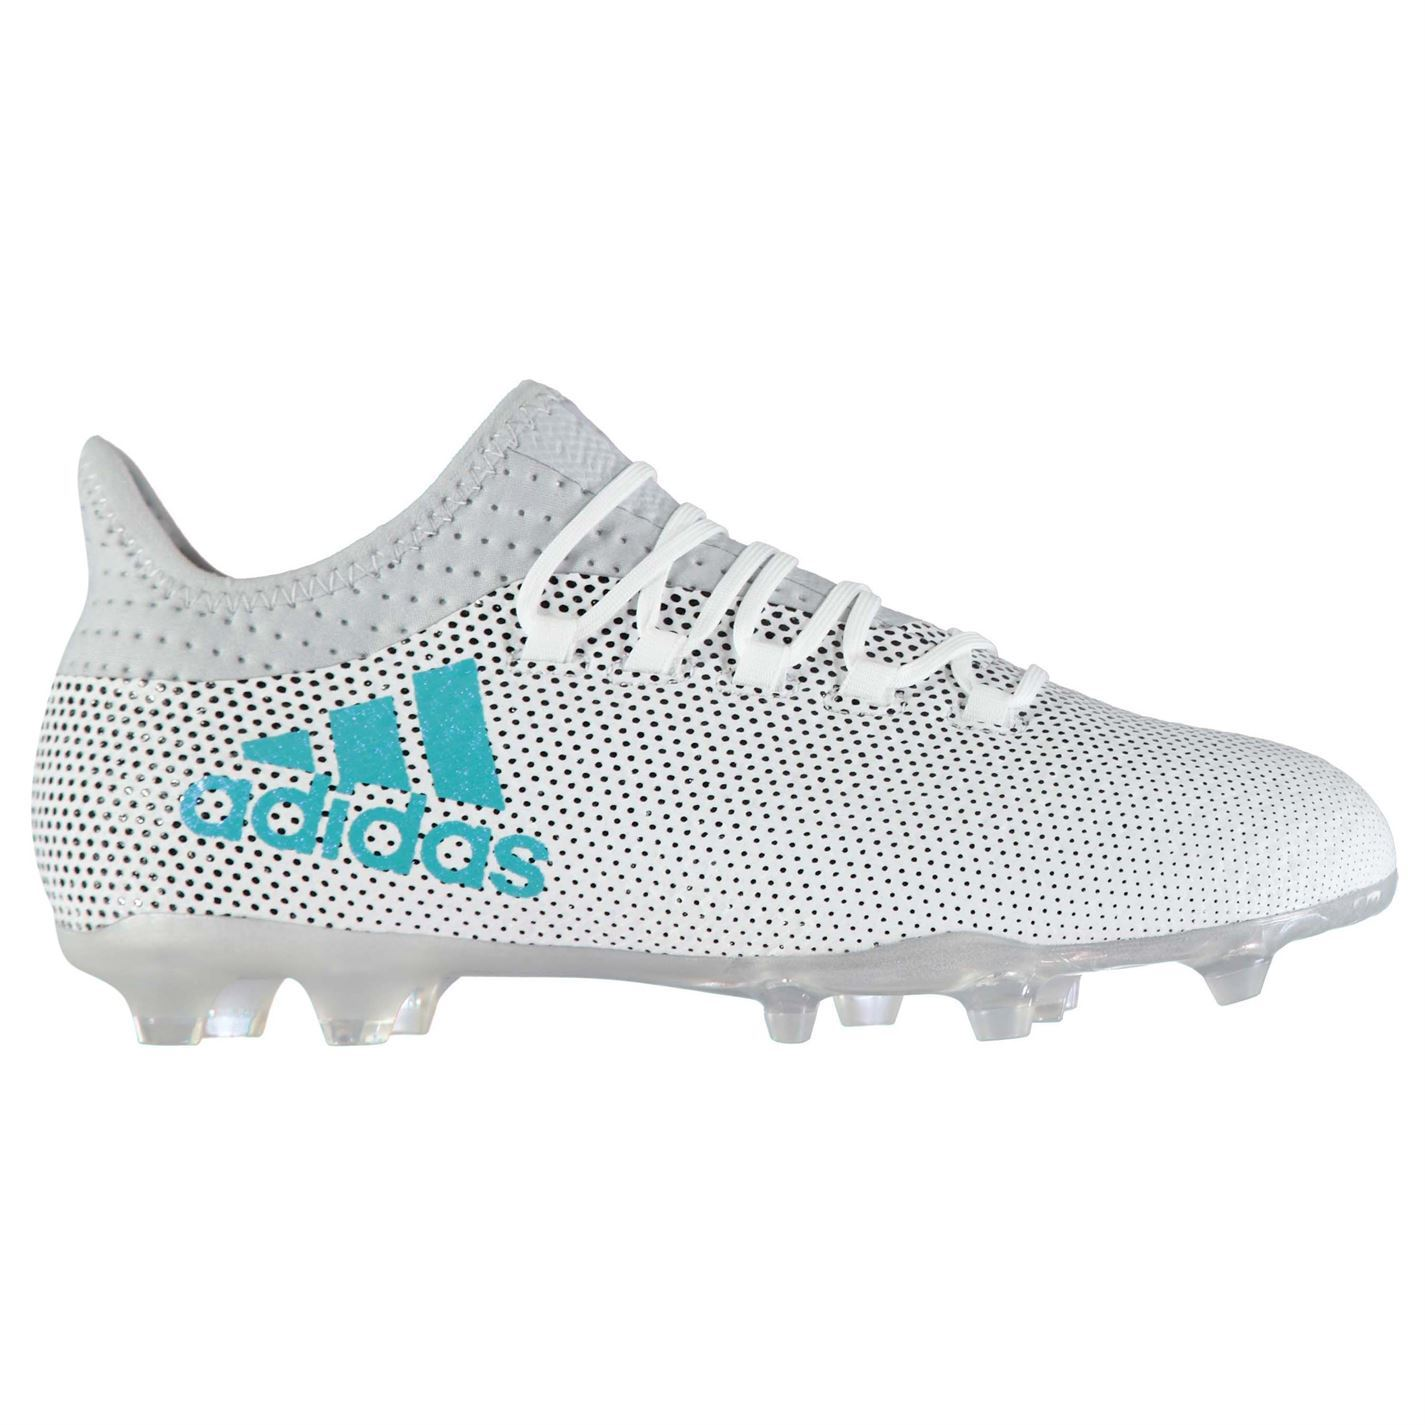 adidas cleats soccer mens